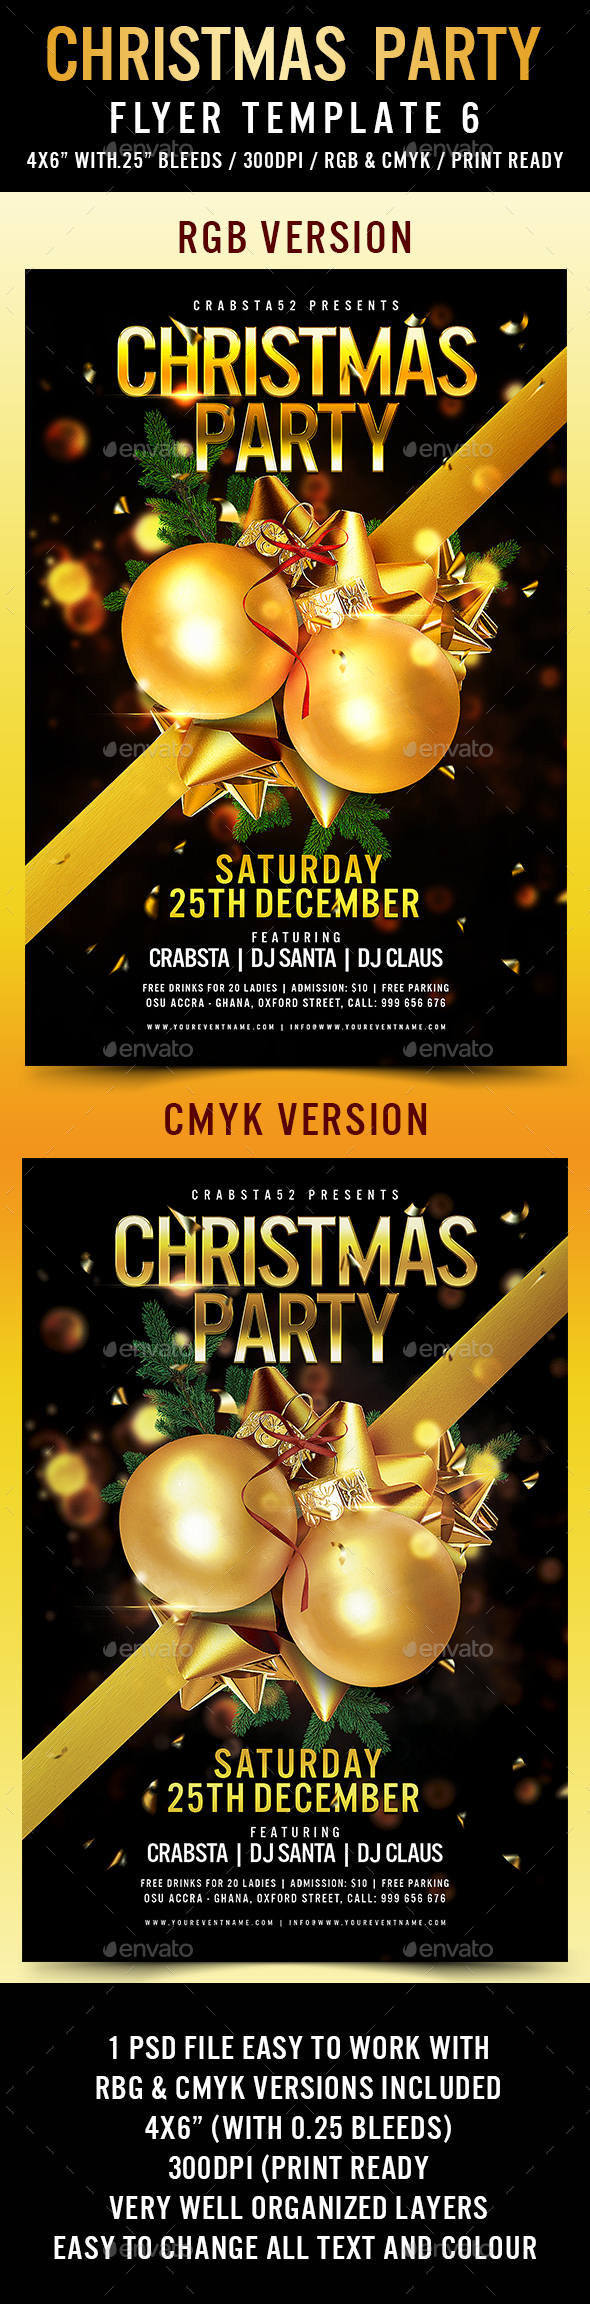 Christmas Party Flyer Template 6 - Flyers Print Templates